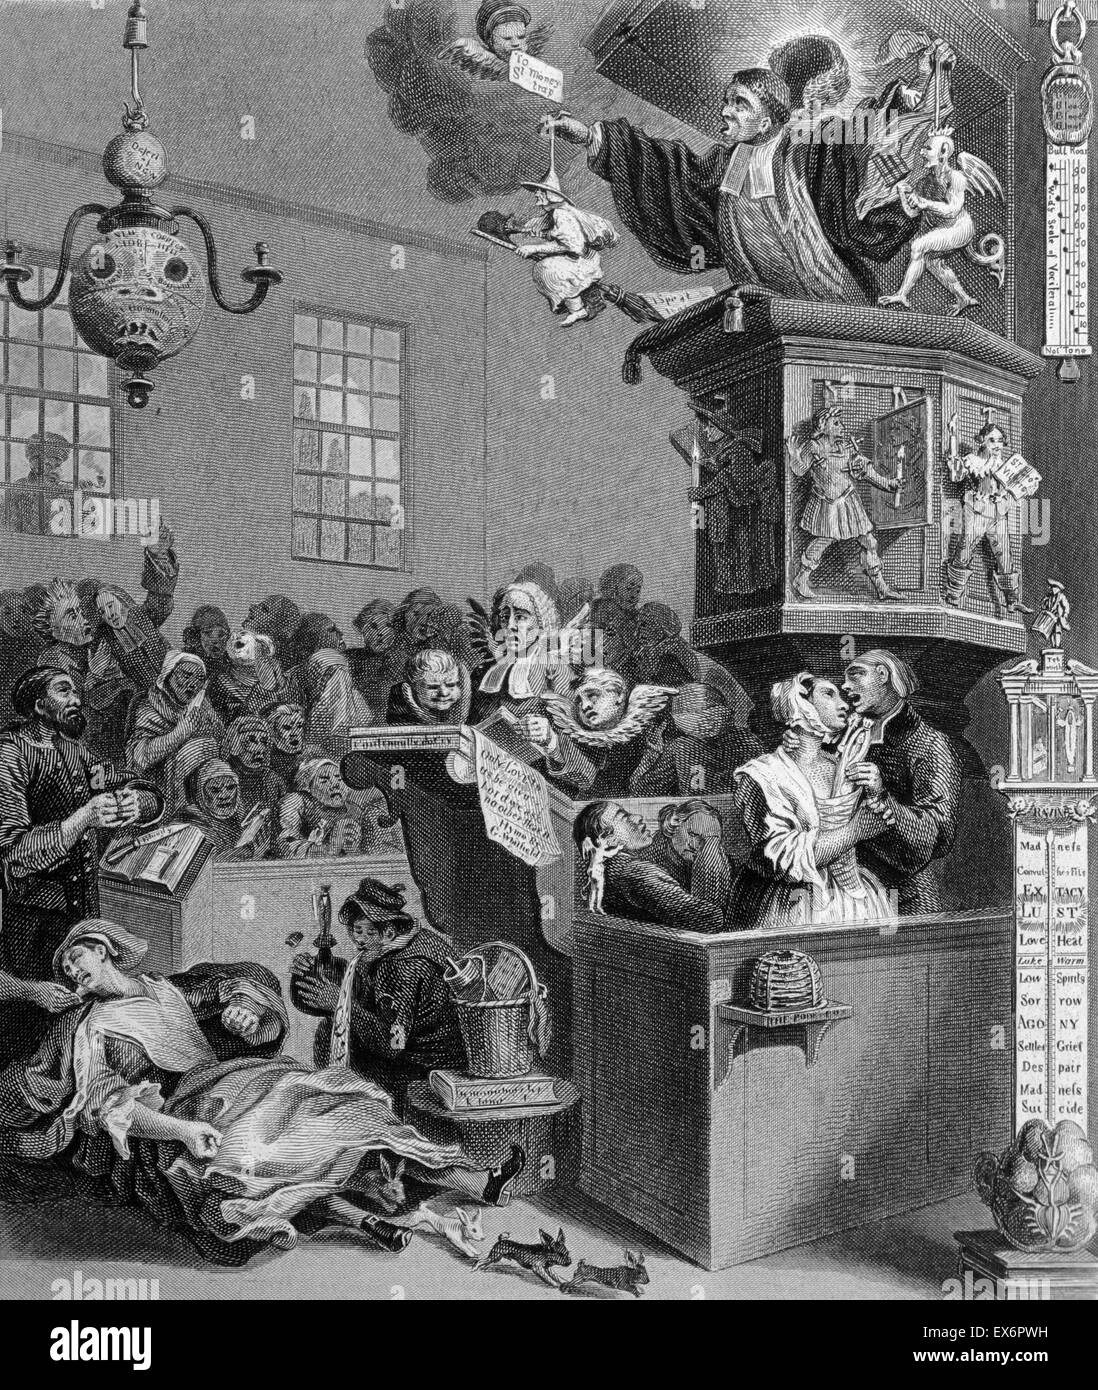 the art of william hogarth essay Source literature on william hogarth, his life, his paintings and his engravings biographies, book reviews, online essays, exhibition reviews, and other resources on.